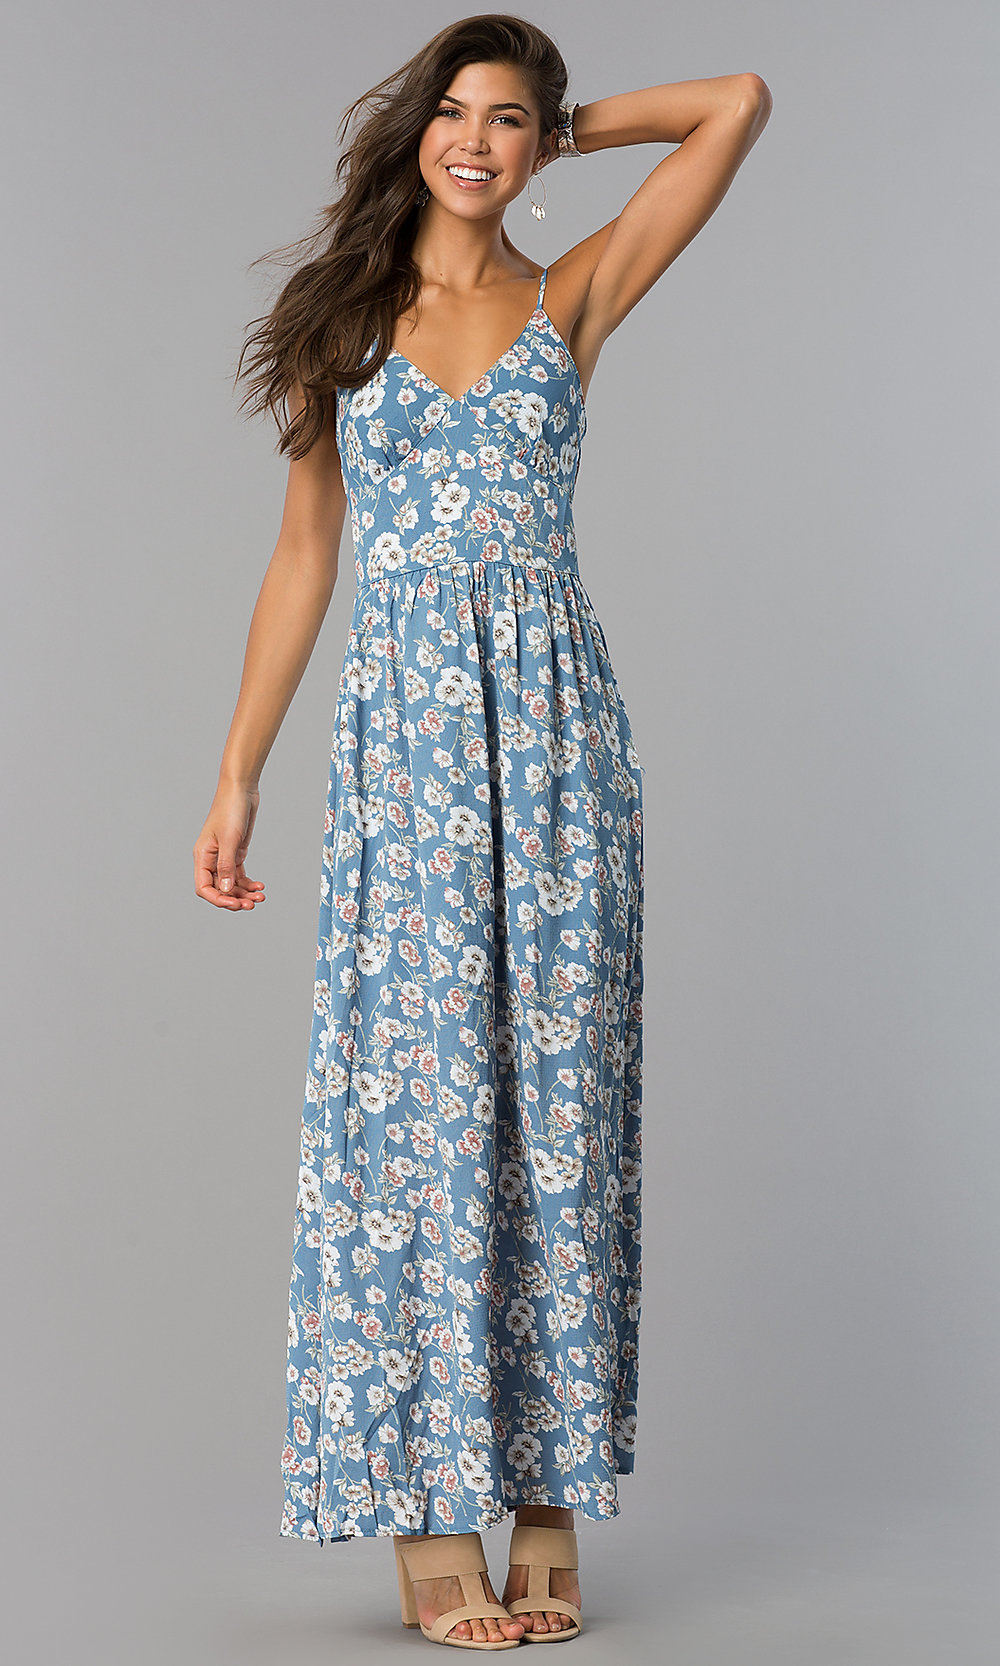 Choose from our collection of casual day dresses for women, including maxi dresses, rompers and more. Shop for casual dresses at New York & Company. Choose from our collection of casual day dresses for women, including maxi dresses, rompers and more. these easy-to-wear styles will have you ready for wherever your day - or night - takes you.